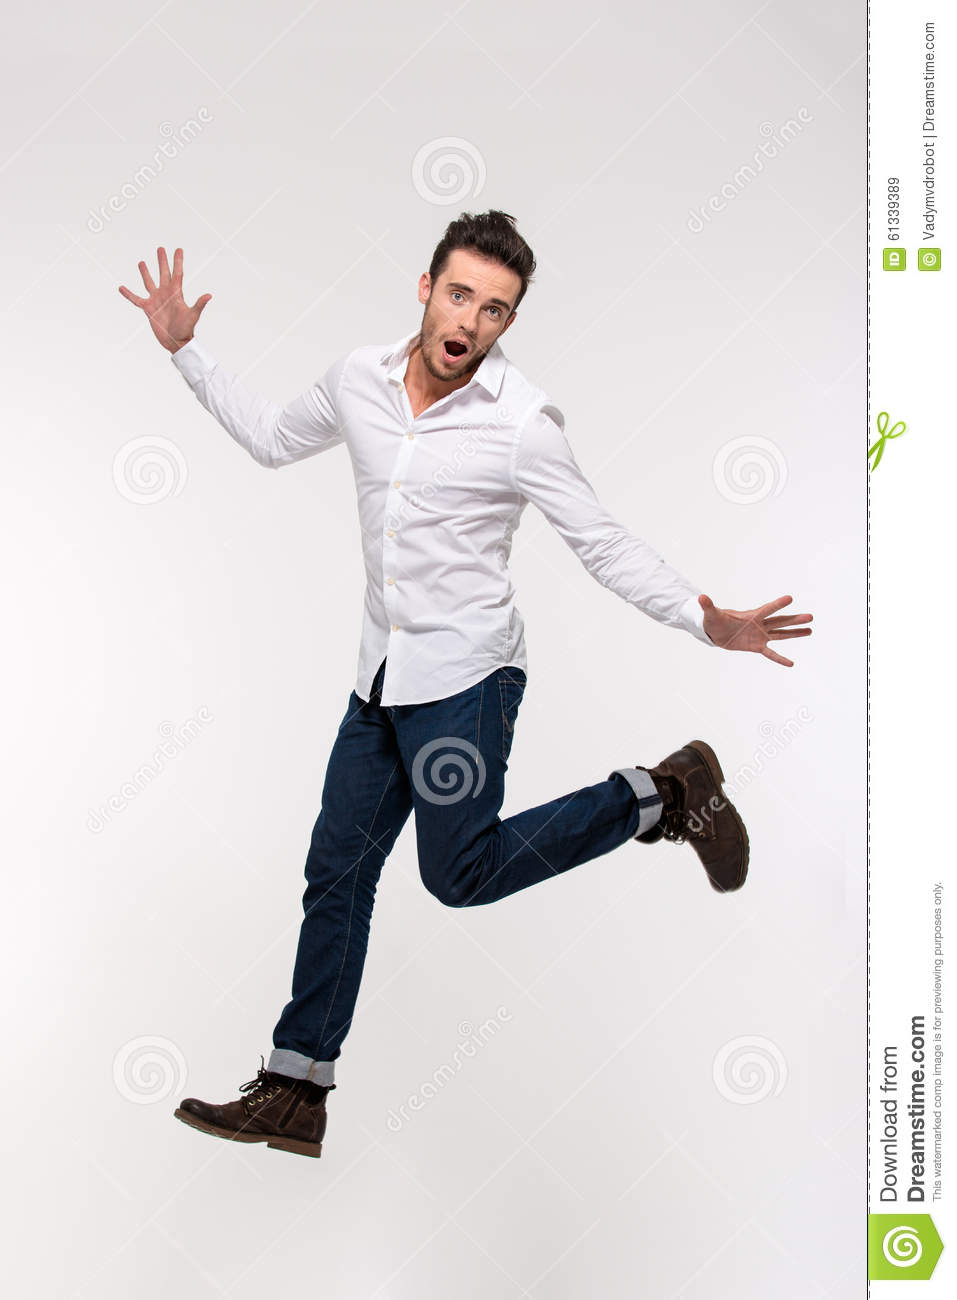 Portrait of a funny casual man jumping